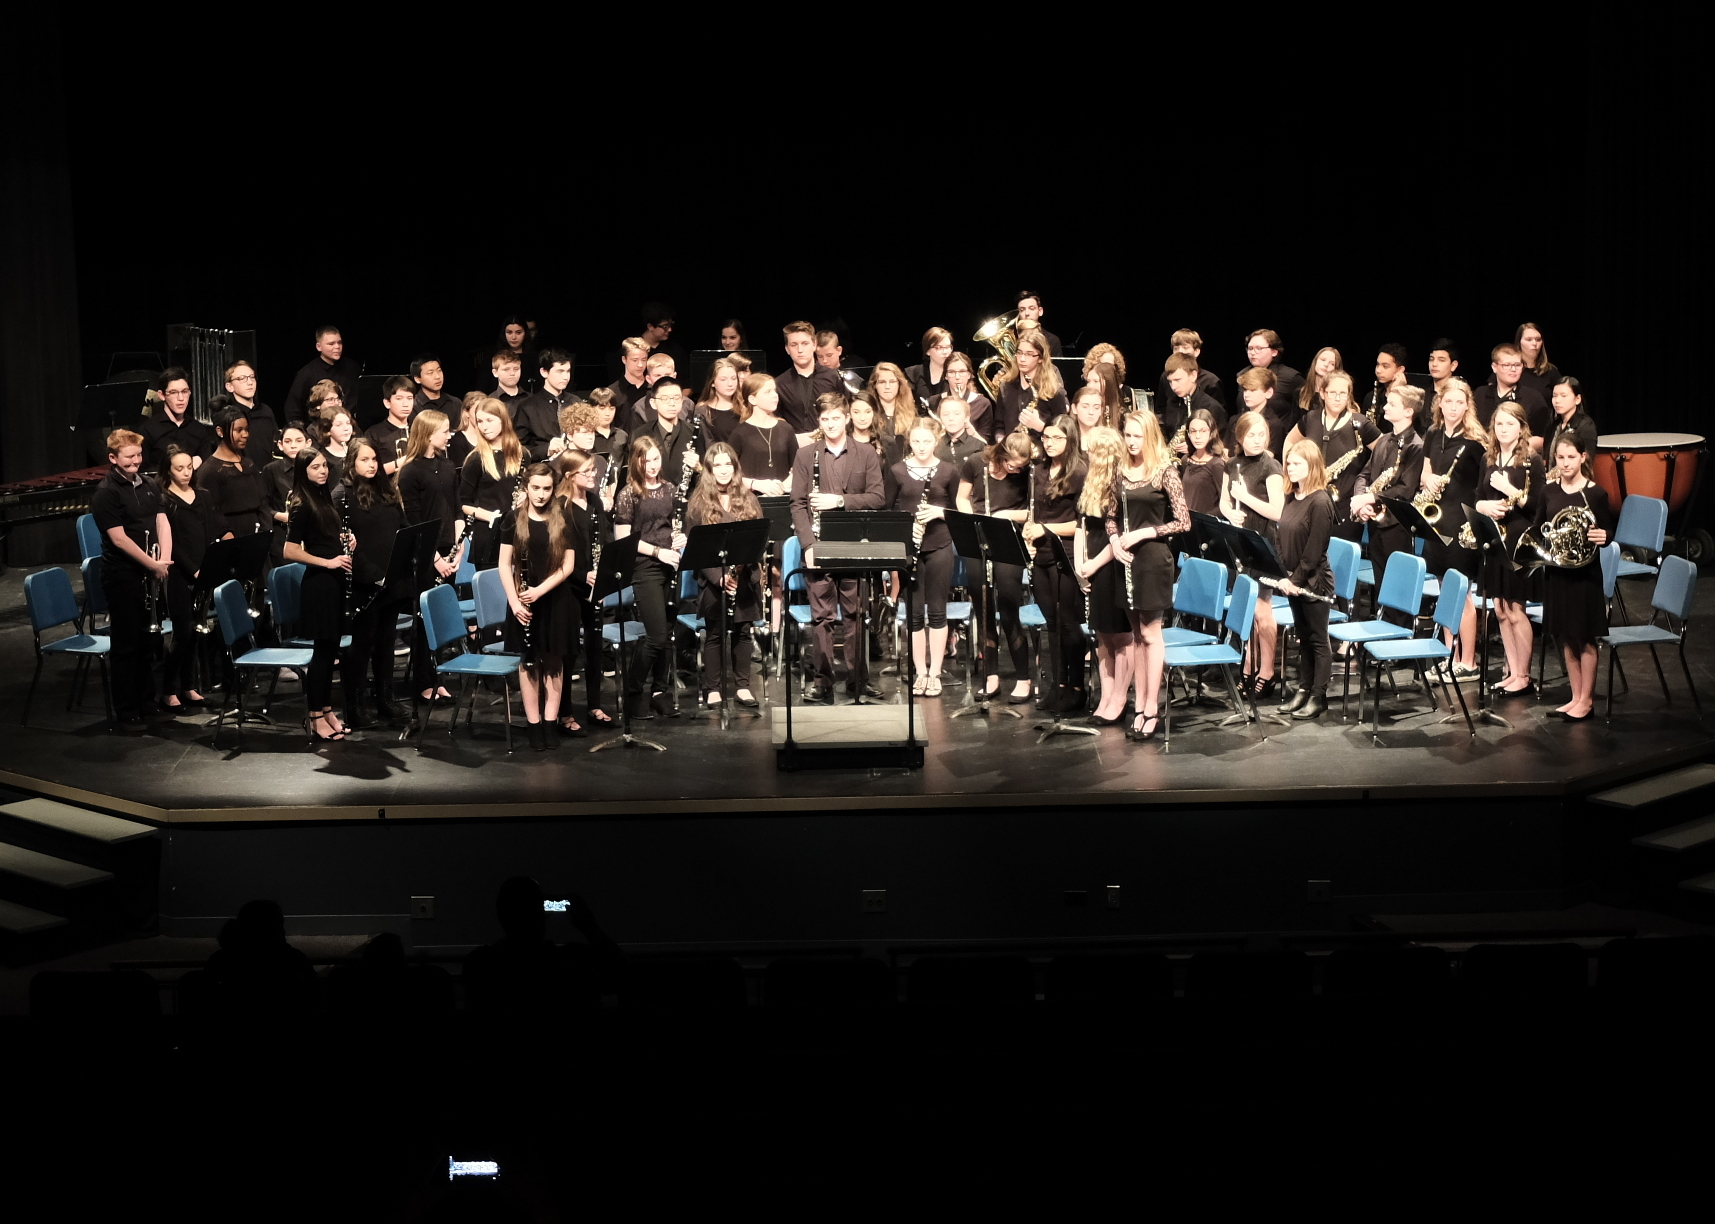 La Vista Middle School bands receive perfect scores at music contest